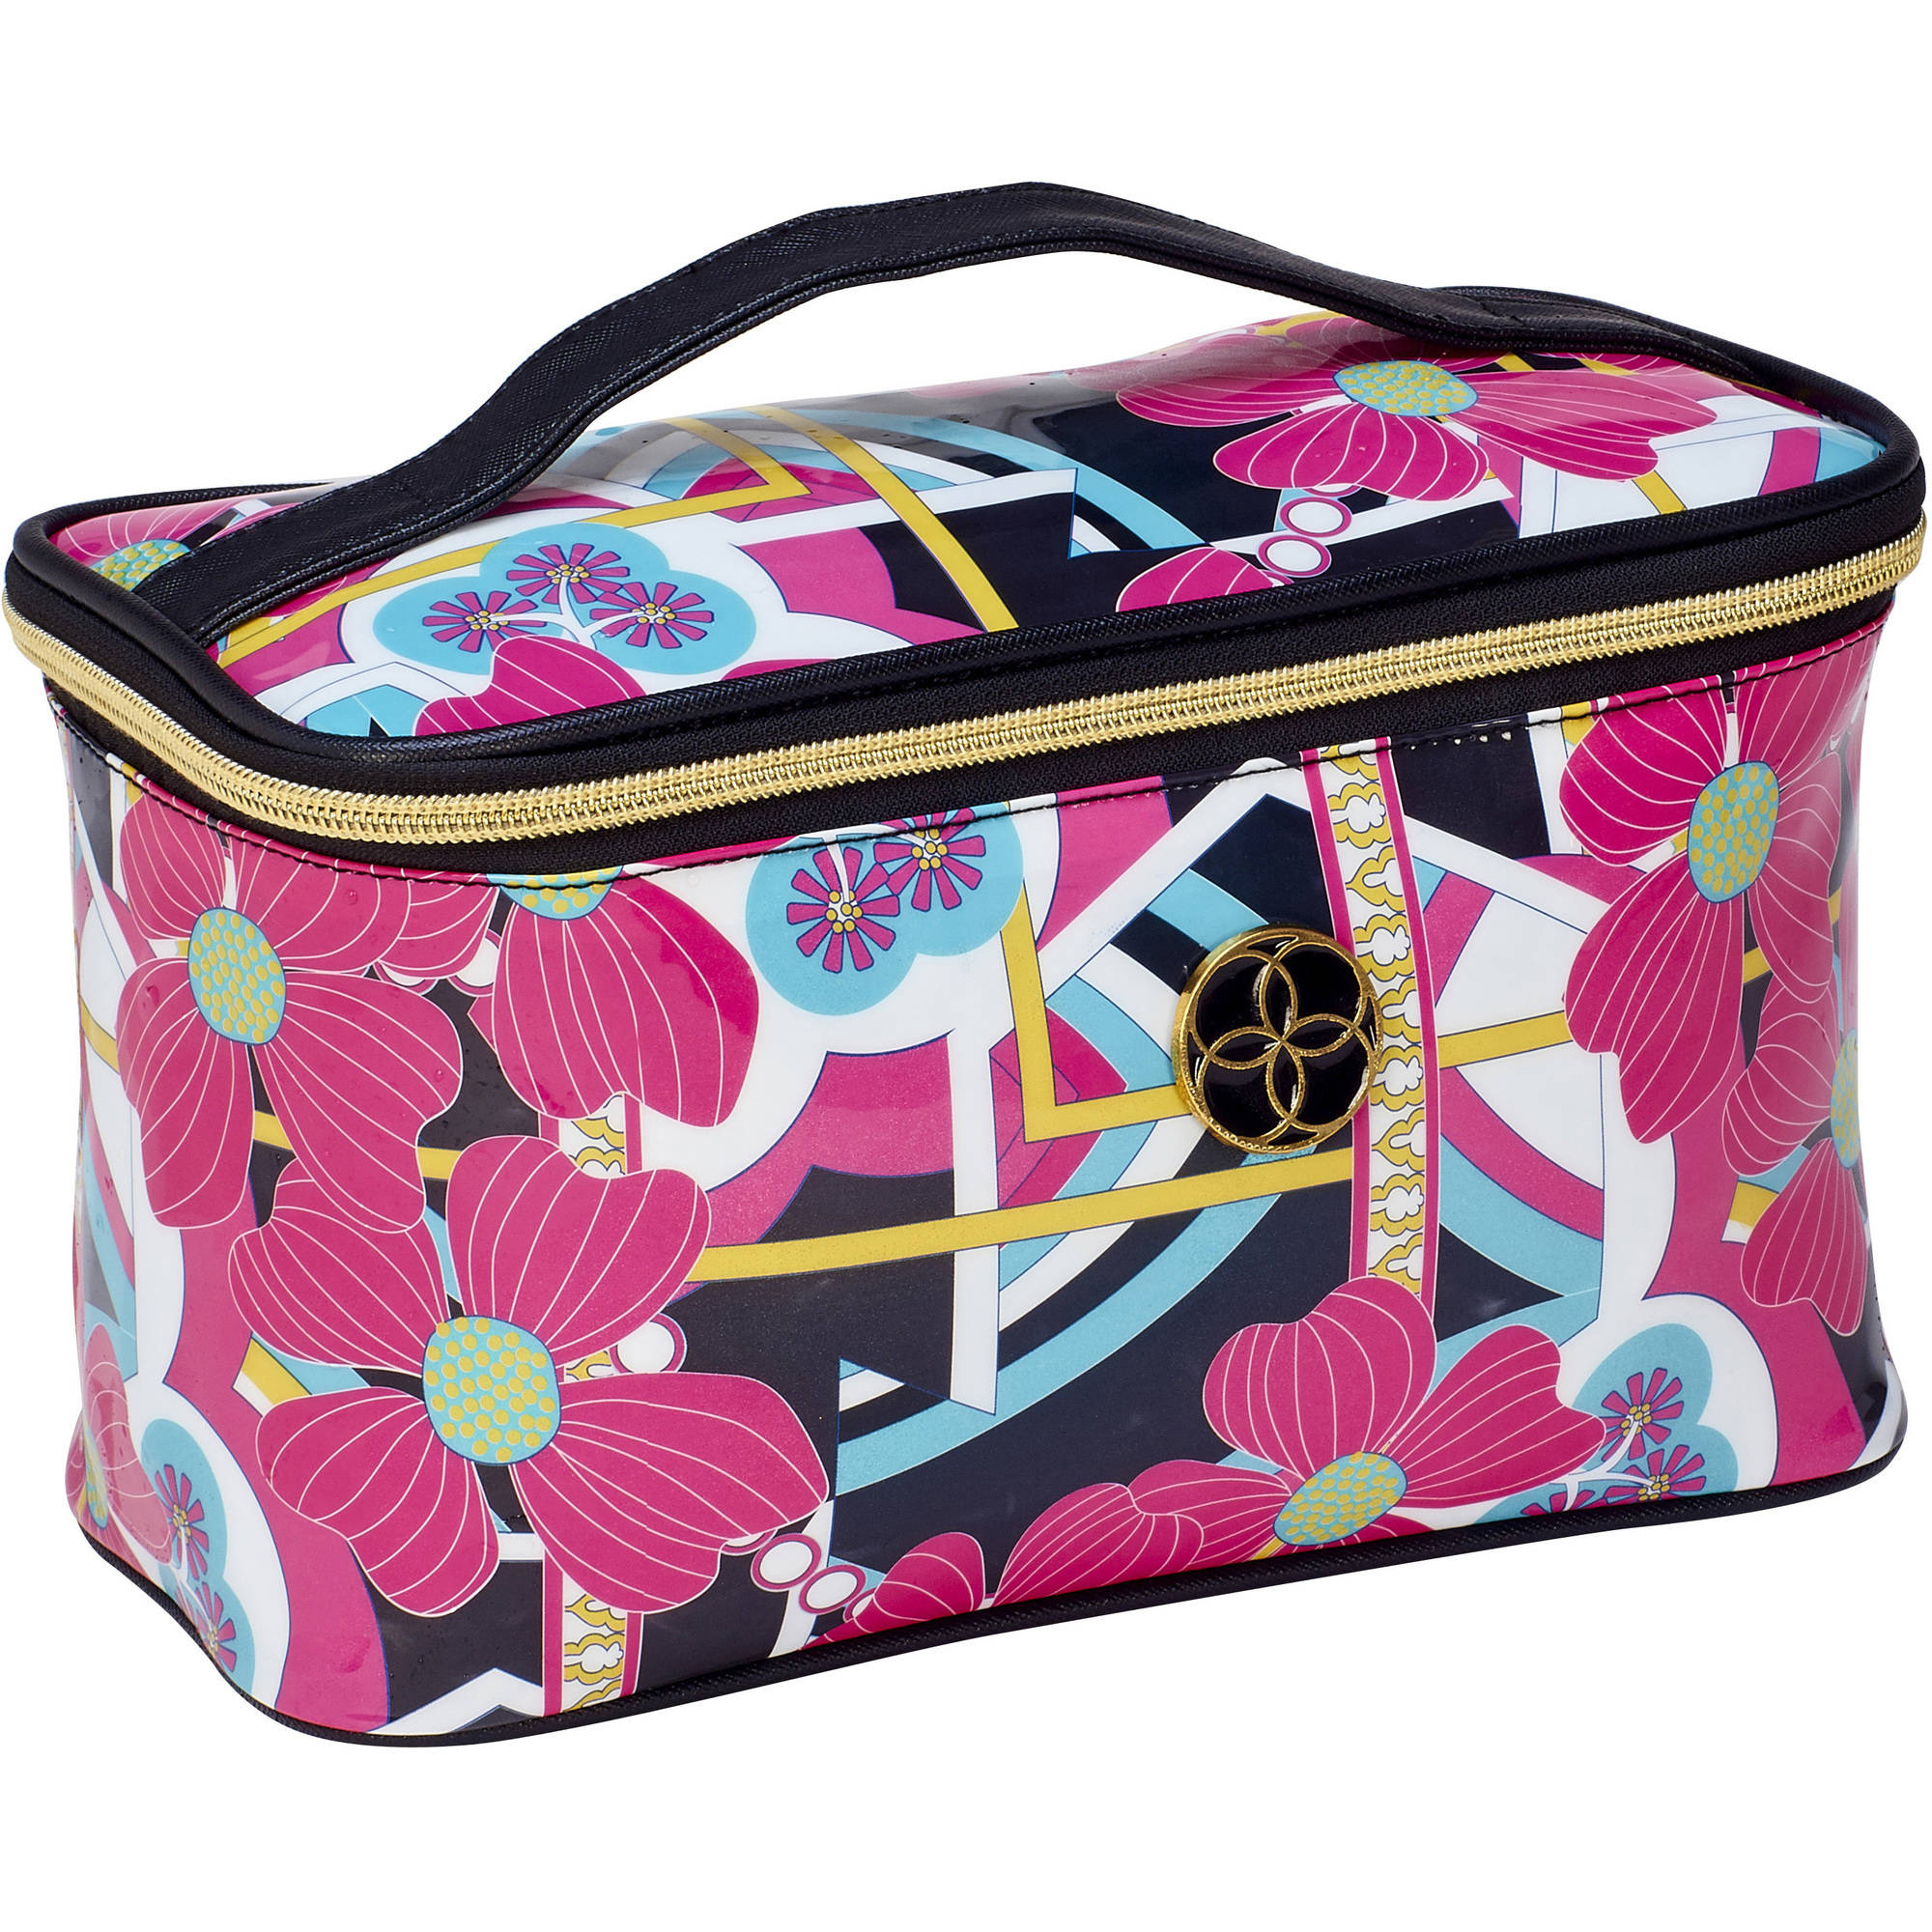 Candie Couture Bibi Licorice Cosmetic Tote